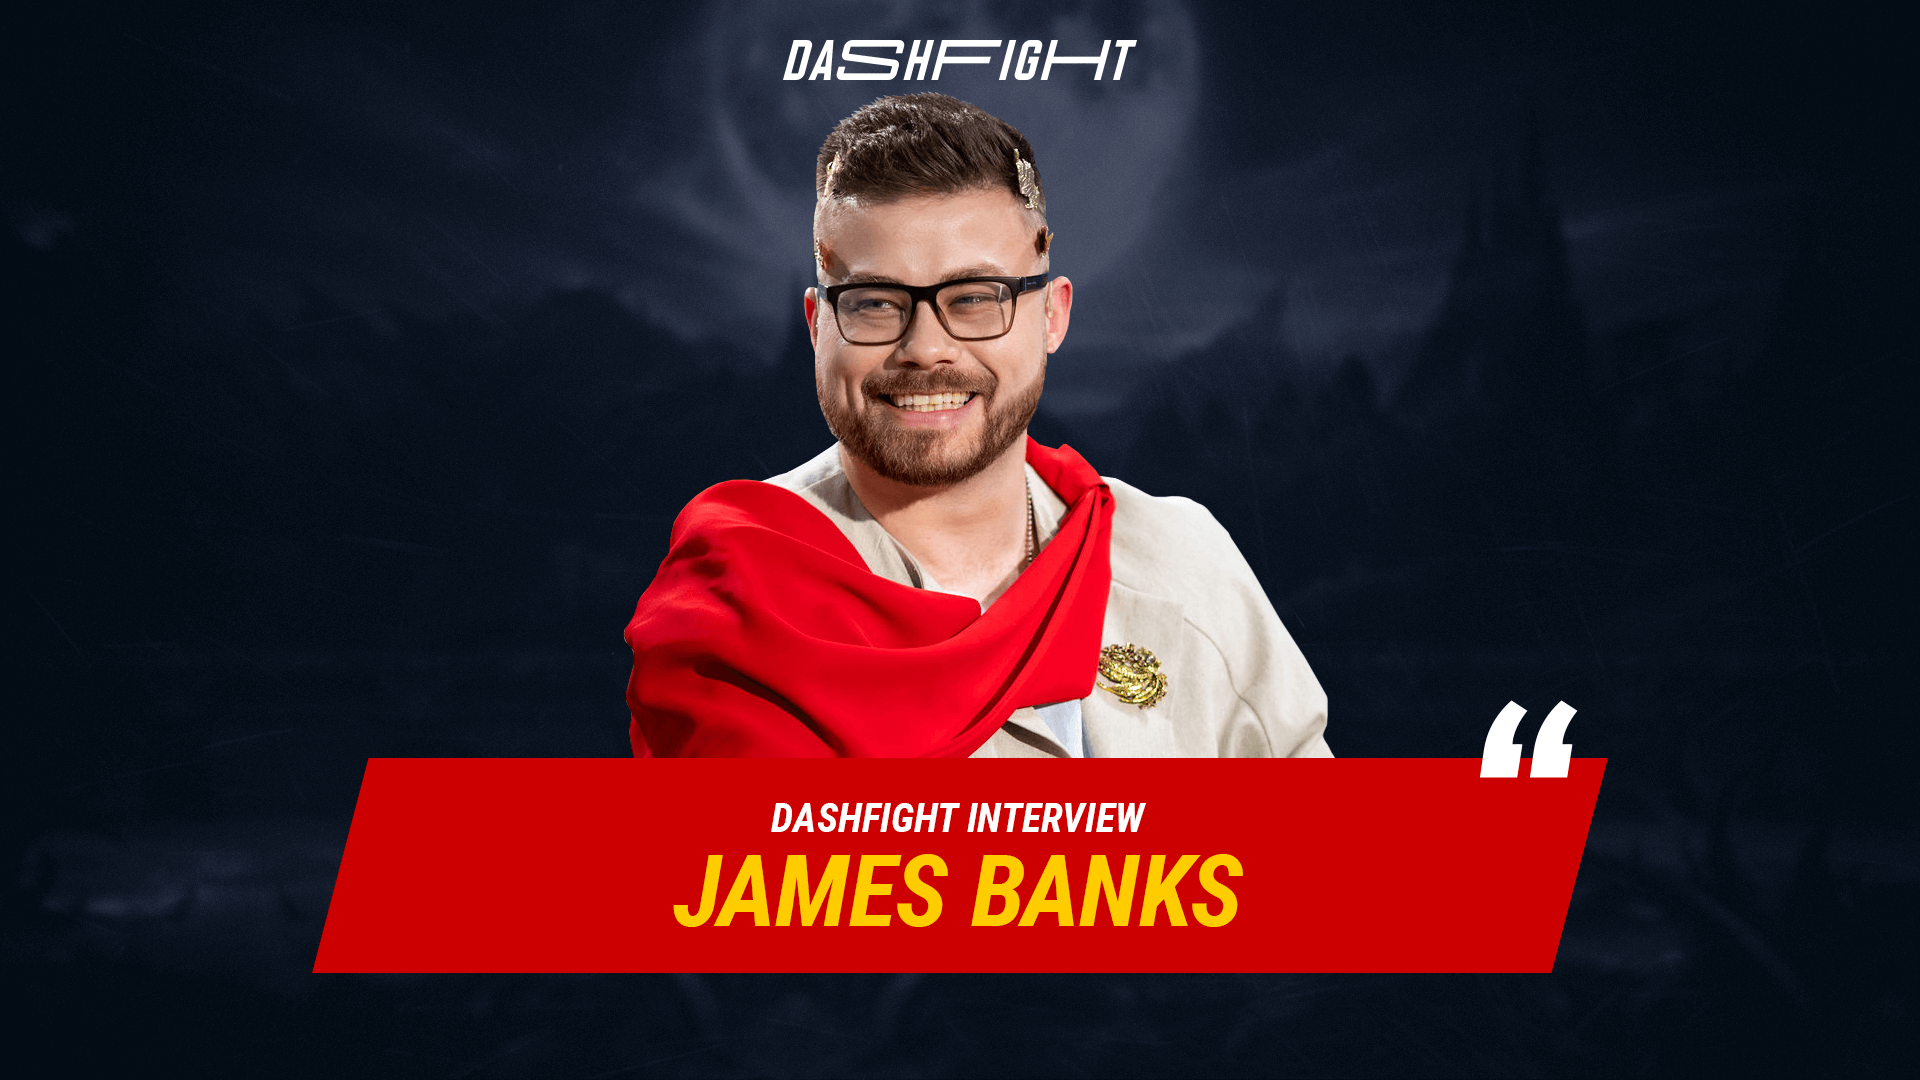 Interview With James Banks About WUFL Season 1